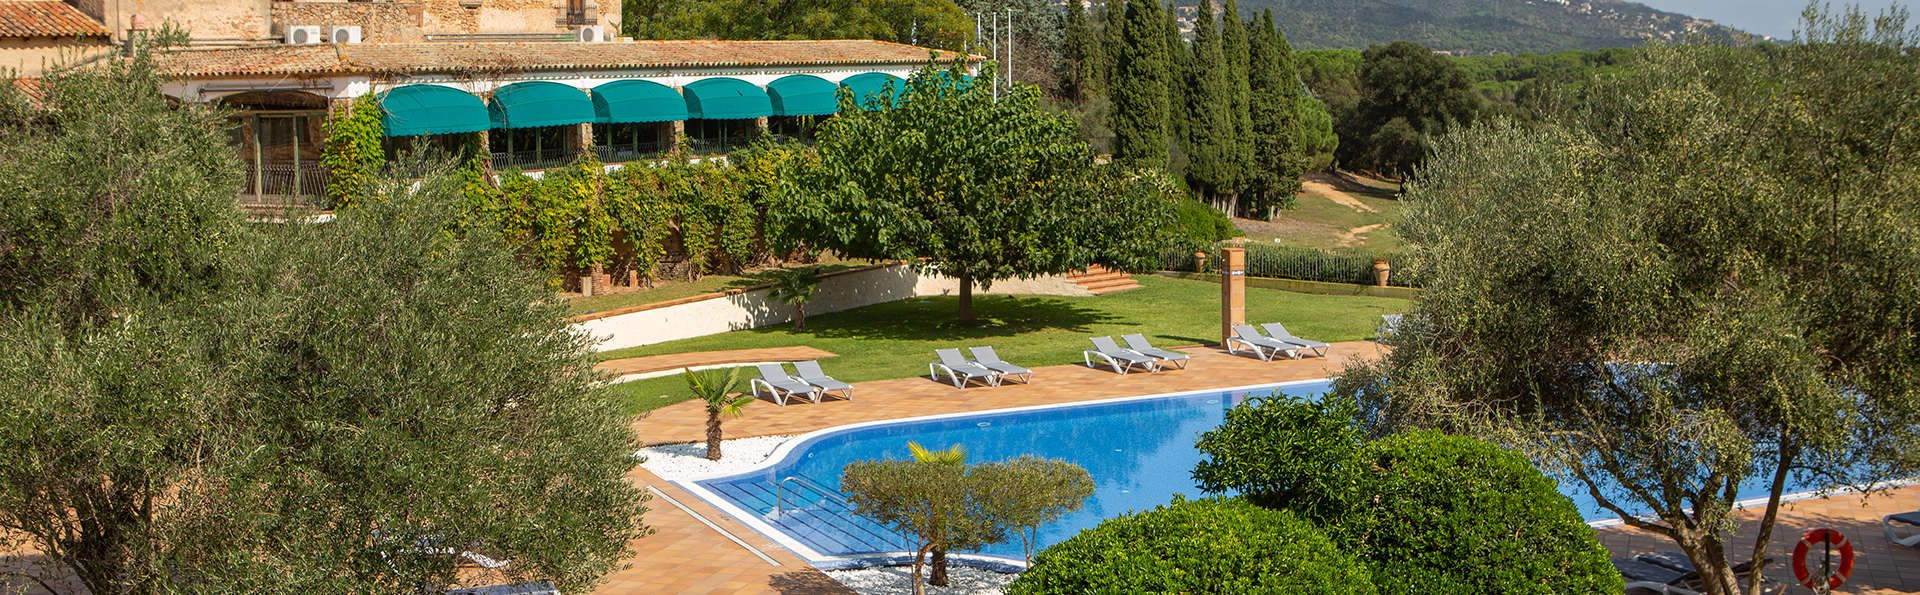 RVHotels Golf Costa Brava - EDIT_FRONT_WITH_POOL_2.jpg